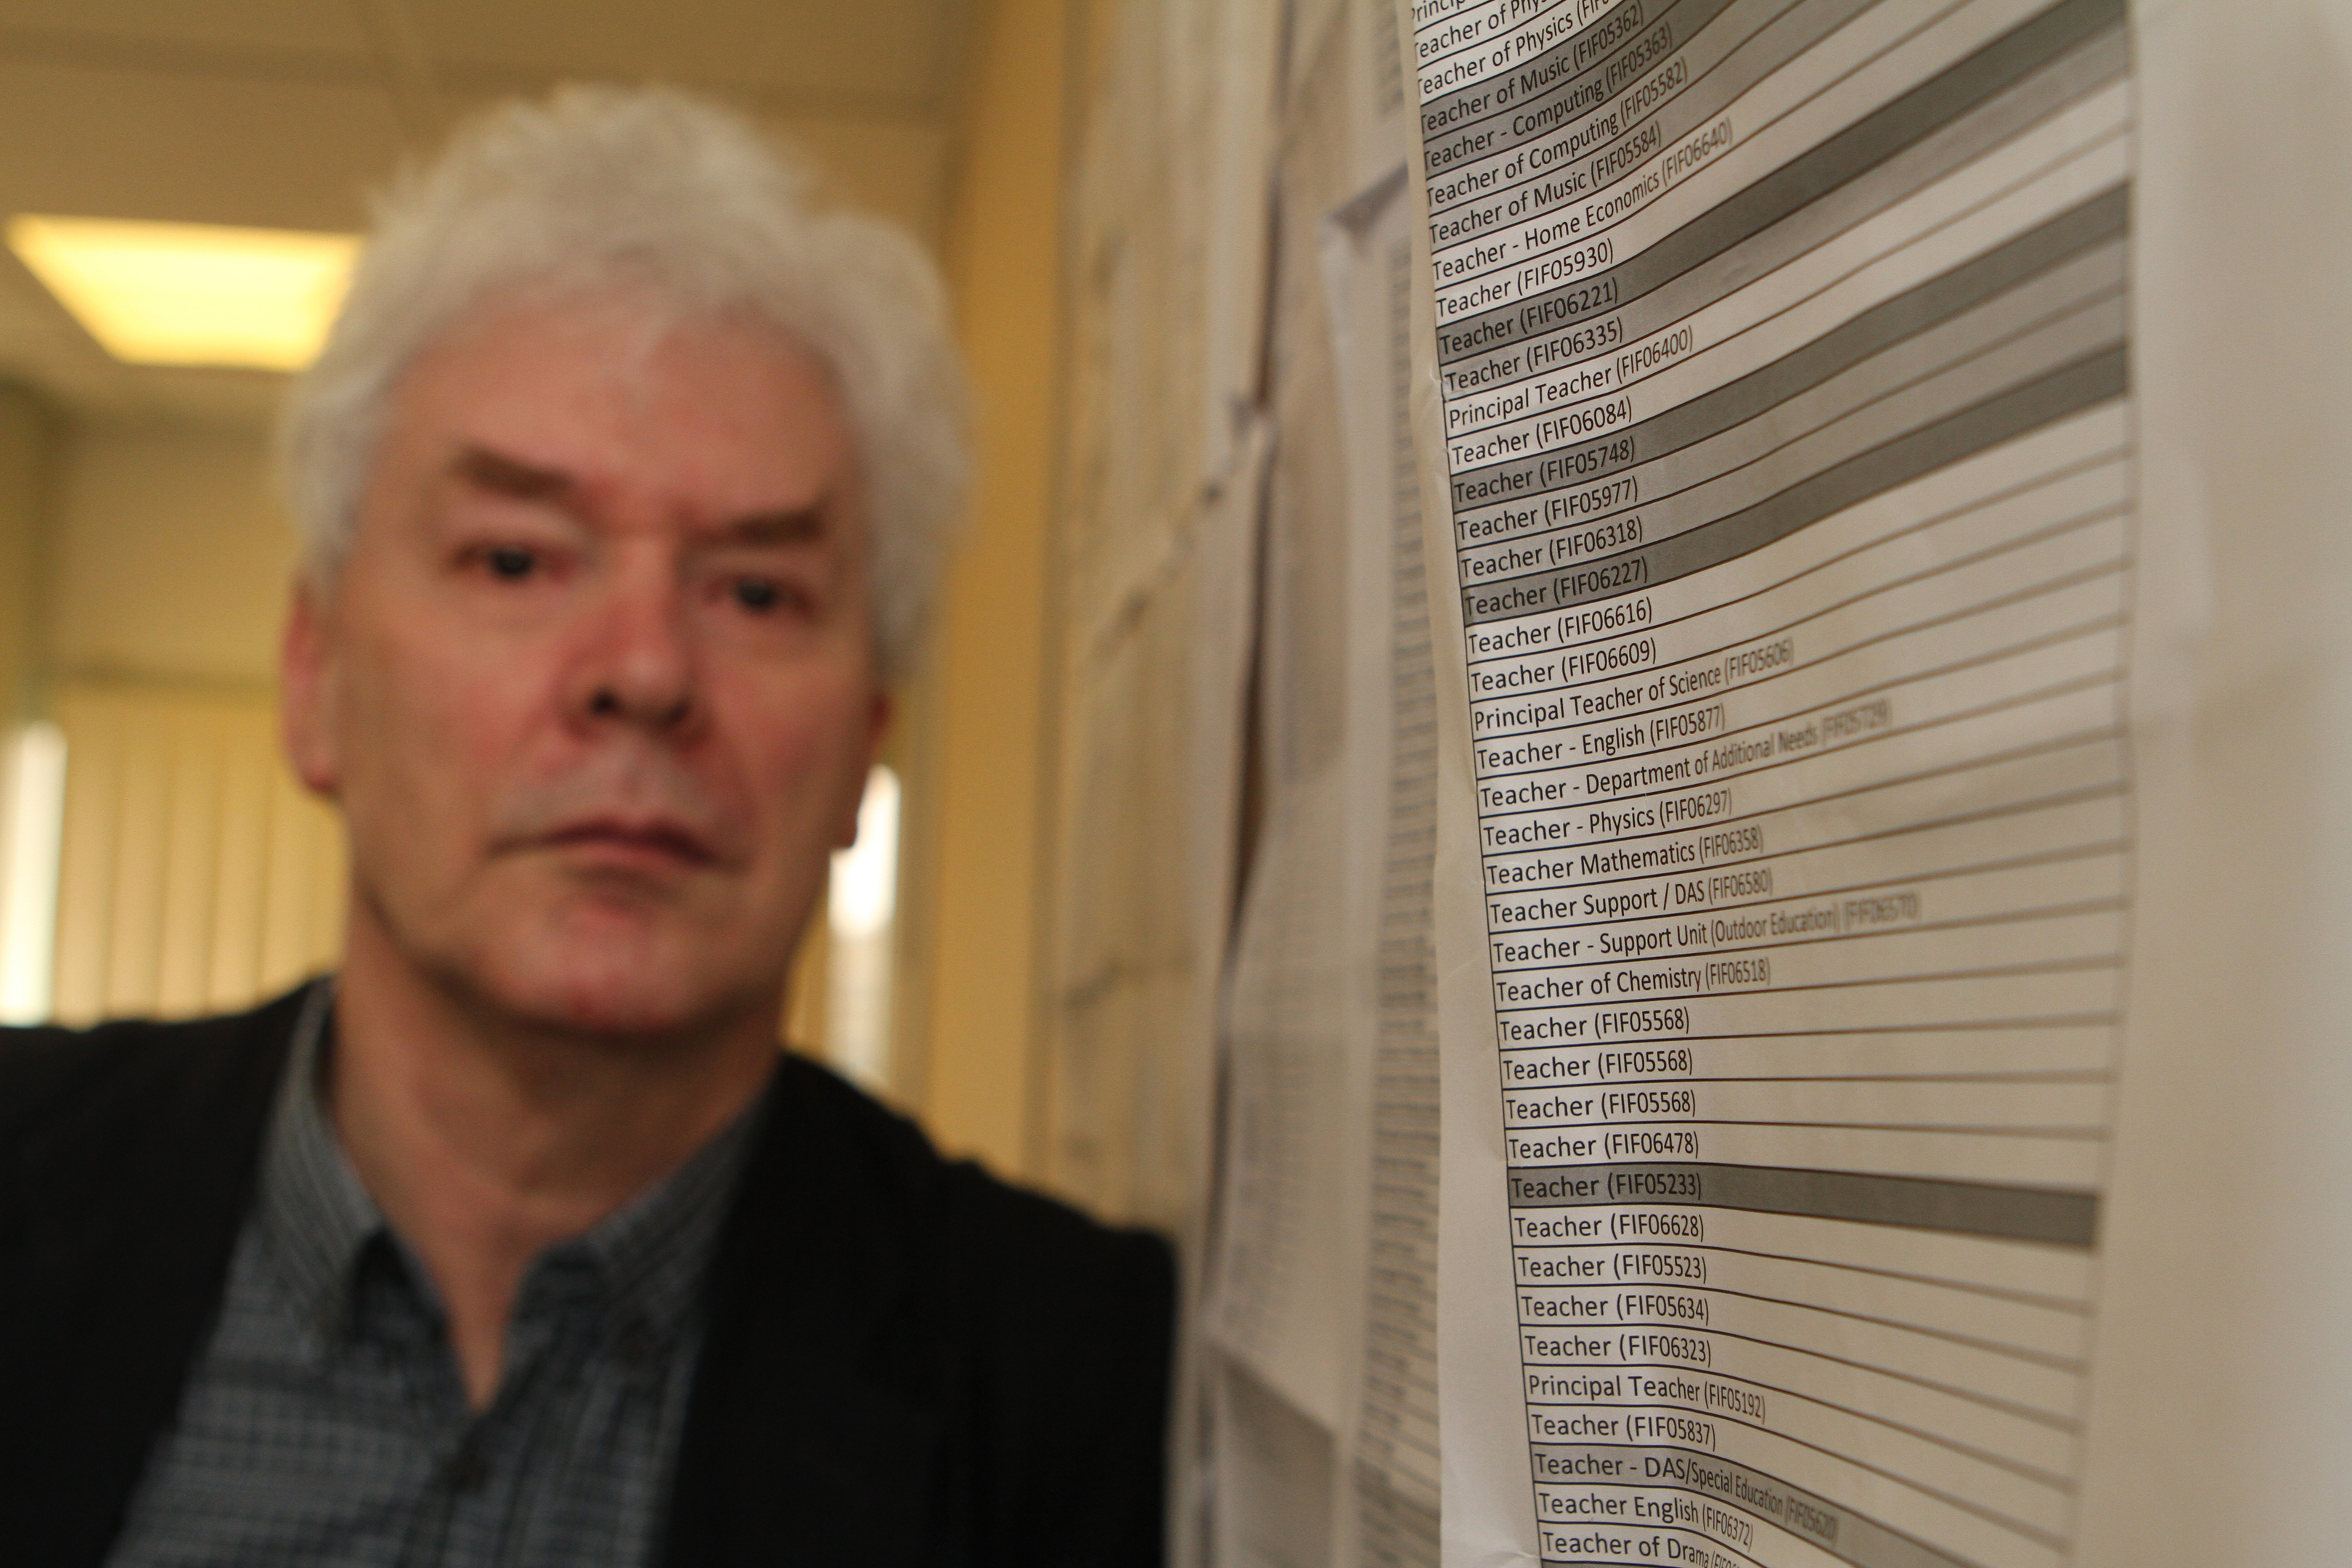 Councillor Bryan Poole, Fife's education spokesperson, has a long list of schools with vacancies across Fife.